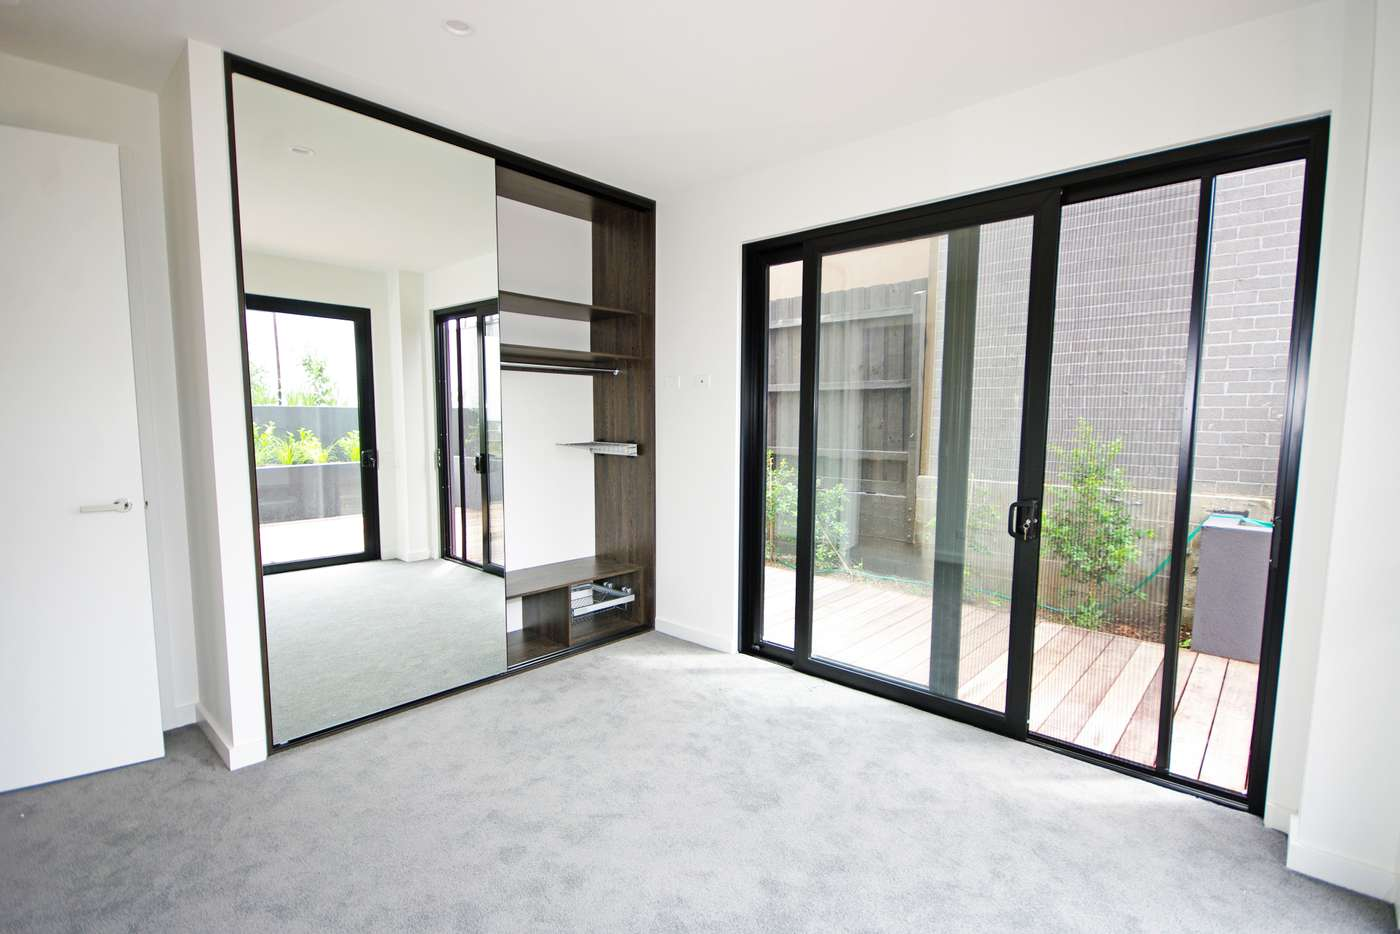 Fifth view of Homely apartment listing, 1/25 Nicholson Street, Bentleigh VIC 3204